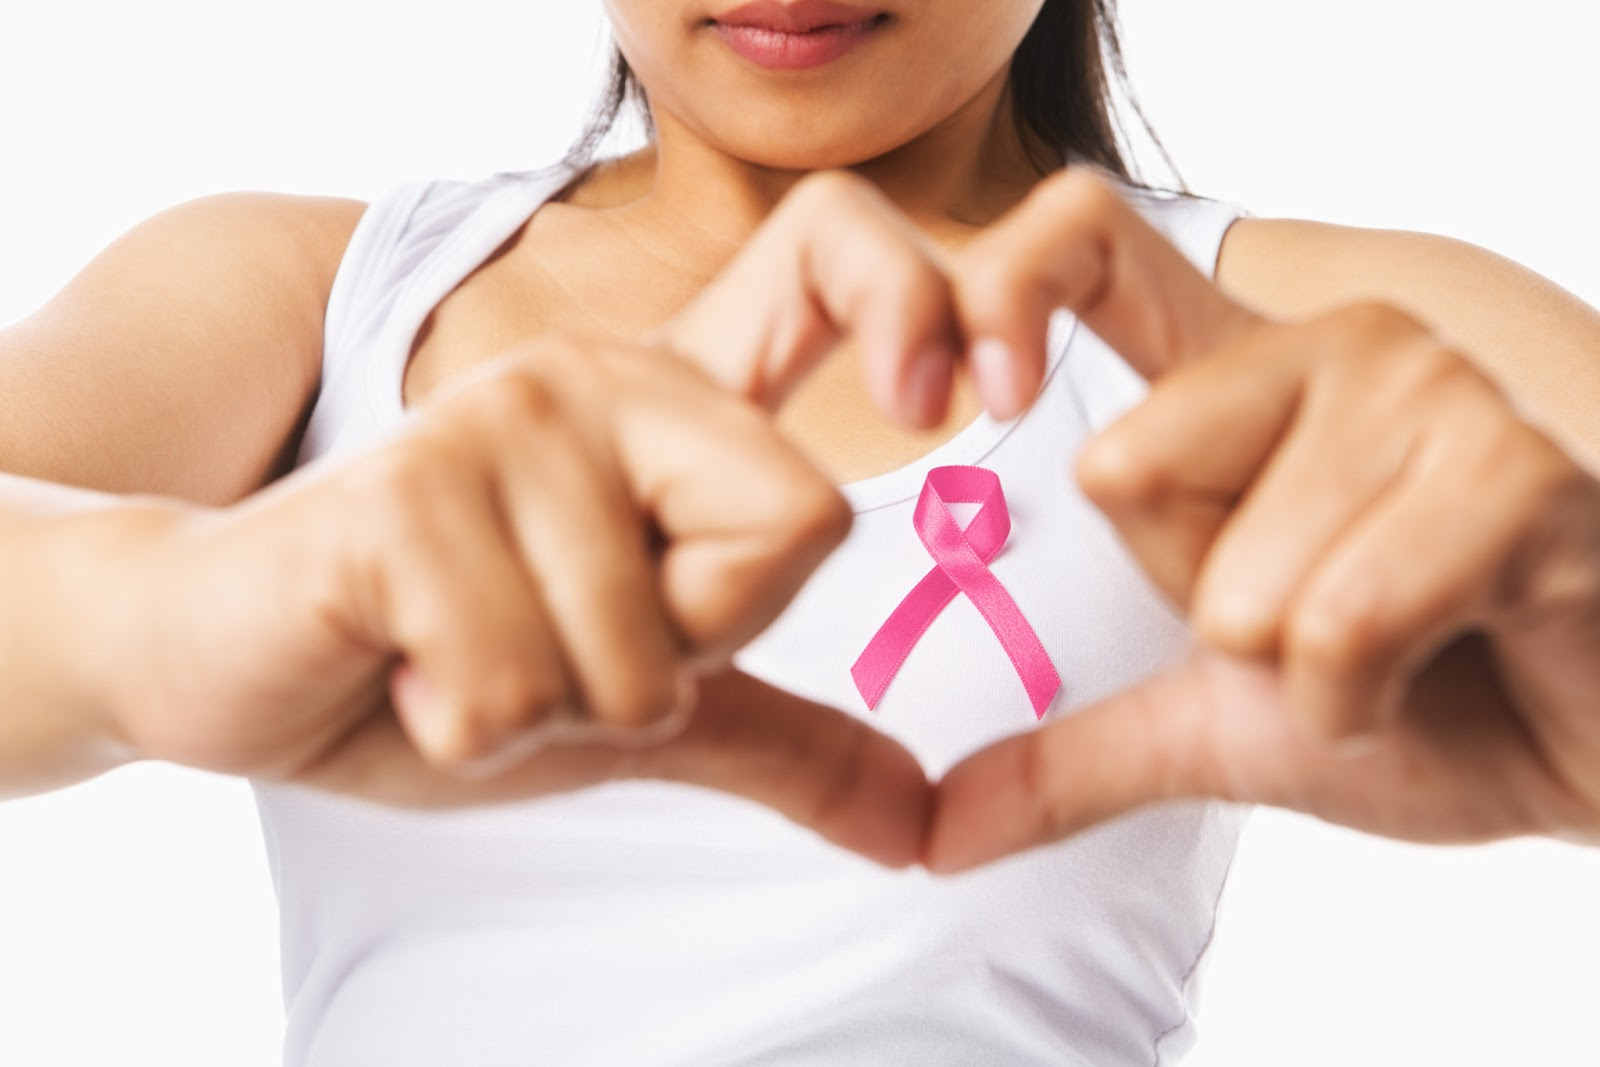 Breast cancer - Sensitive Information for Women